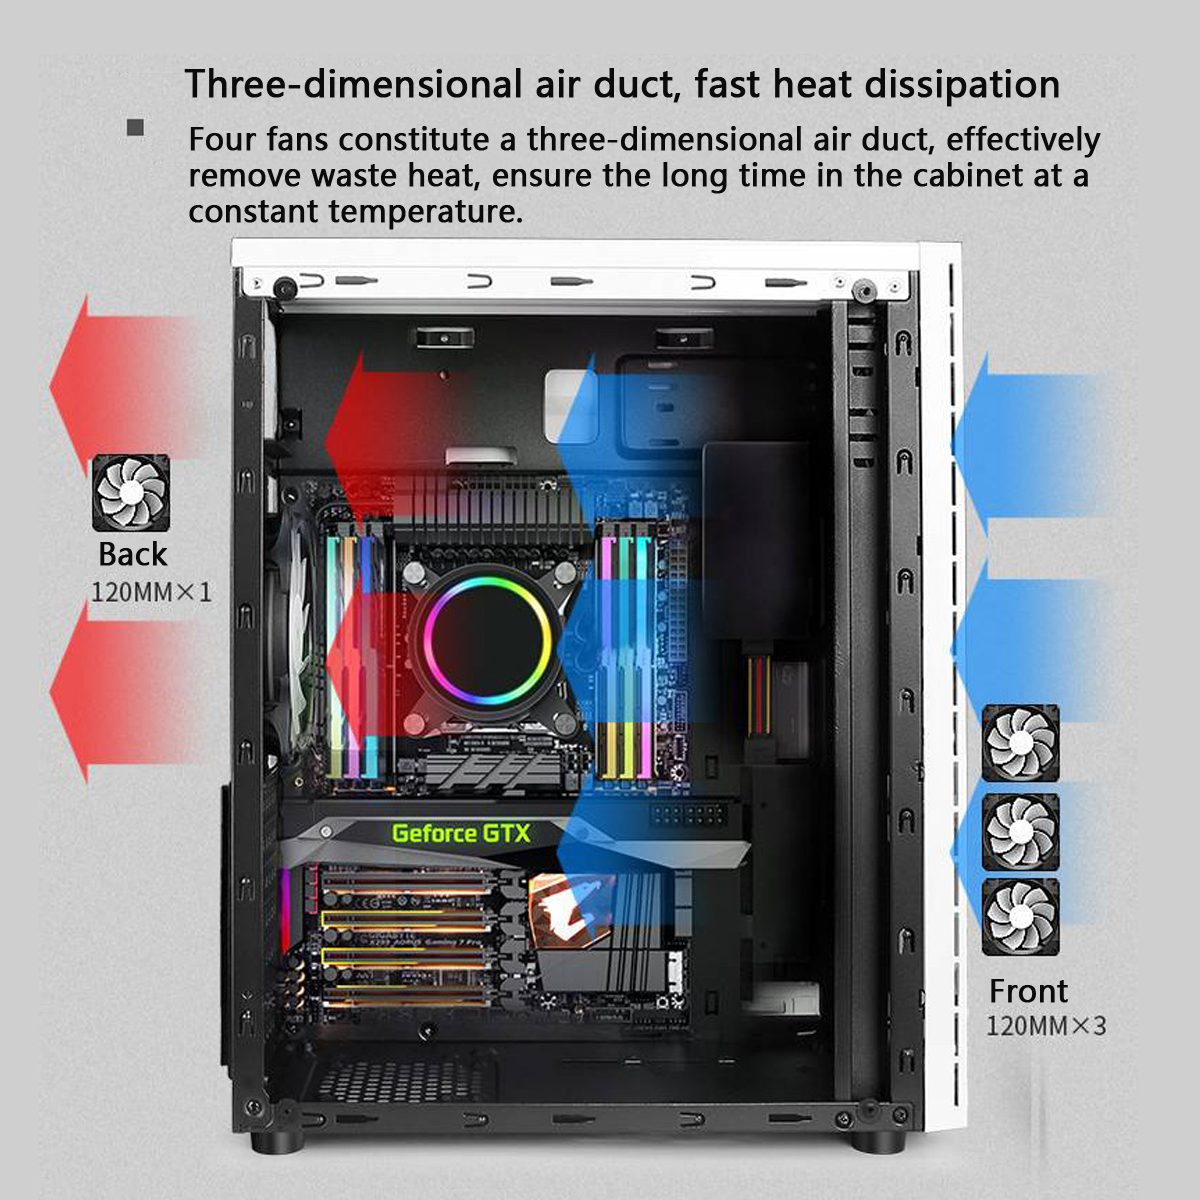 Gaming pc case Acrylic transparent side panels Electric contest gaming with RGB belt support USB3.0 4 Cooling fan 2SSD 1HDD 310mm Graphics card 3 size of mainboard Computer Case